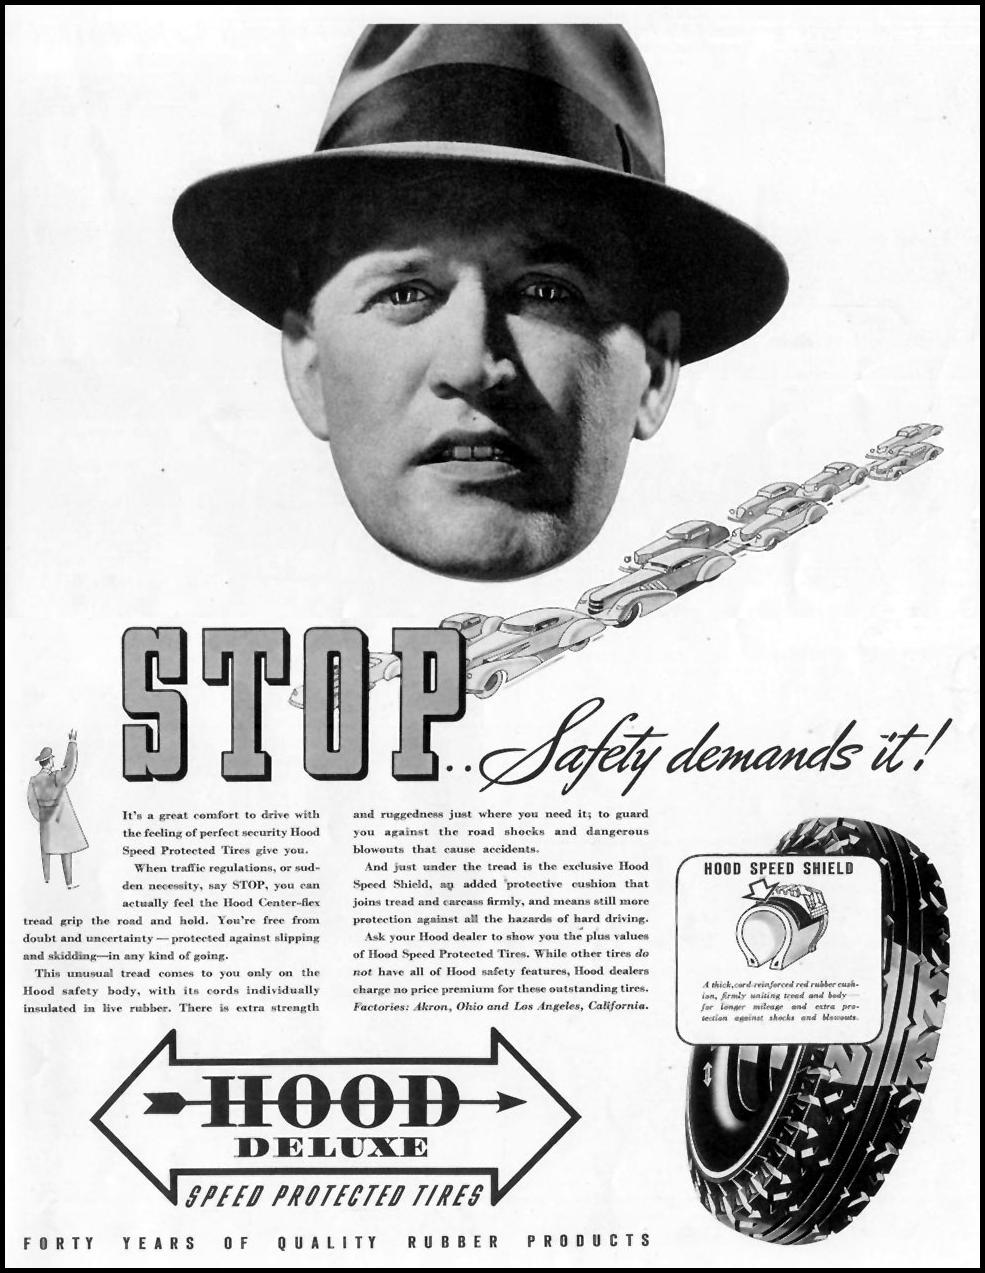 HOOD DELUXE SPEED PROTECTED TIRES LIFE 08/02/1937 p. 77